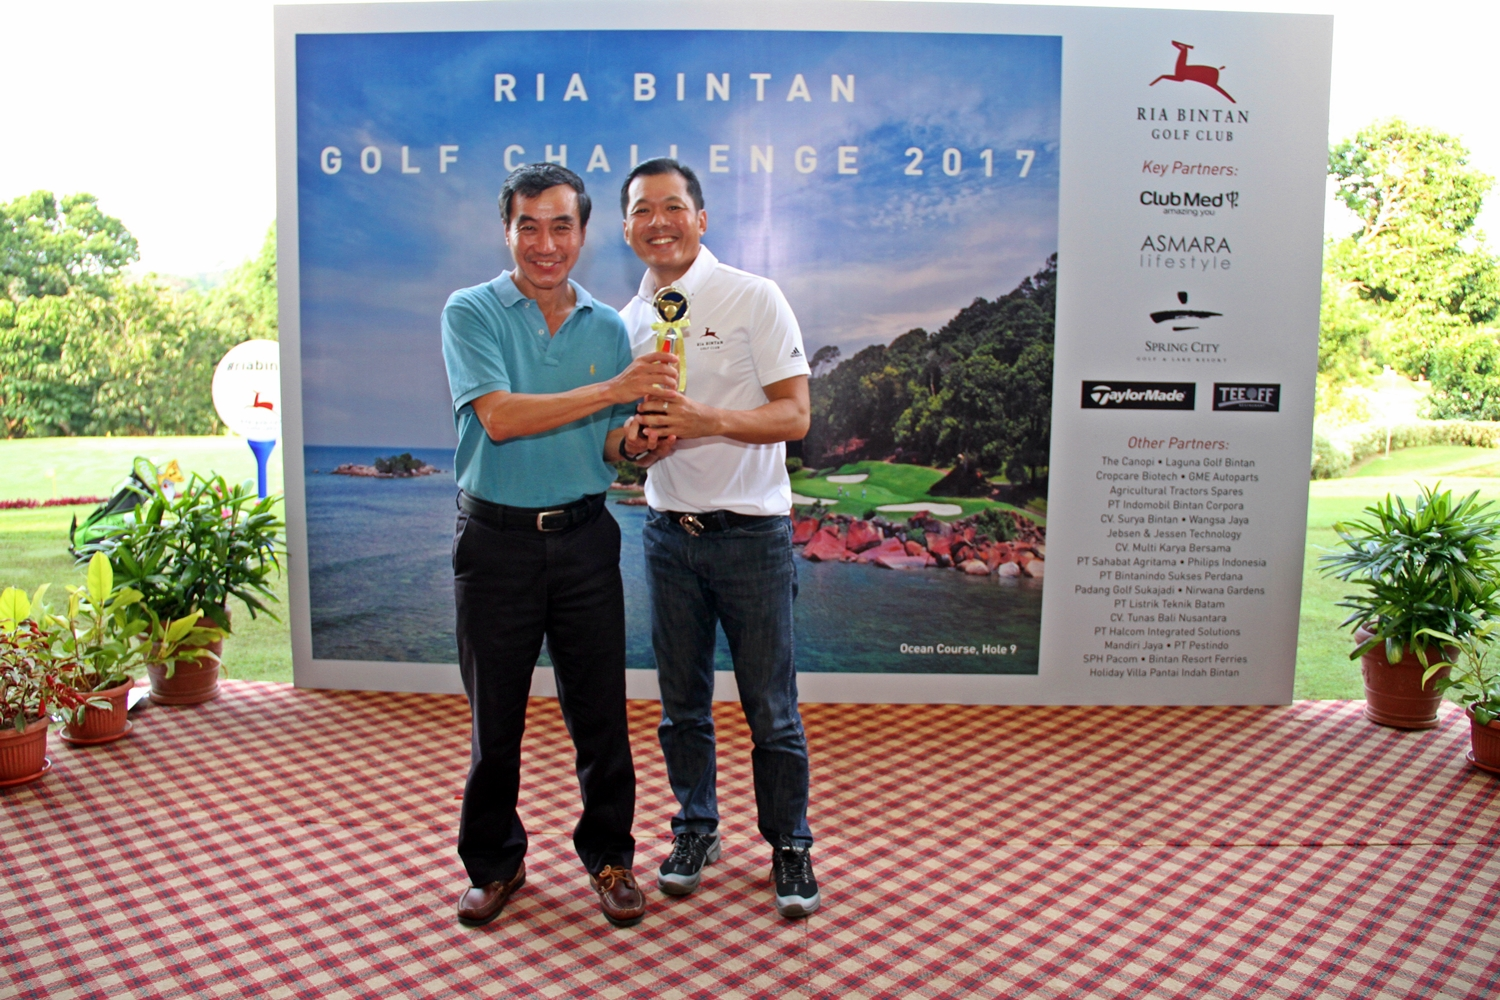 From left to right:  Khoo Peck Khoon (General Manager, Keppel Land Hospitality Management, Golf & Marina), Gary Ng (Overall Champion).